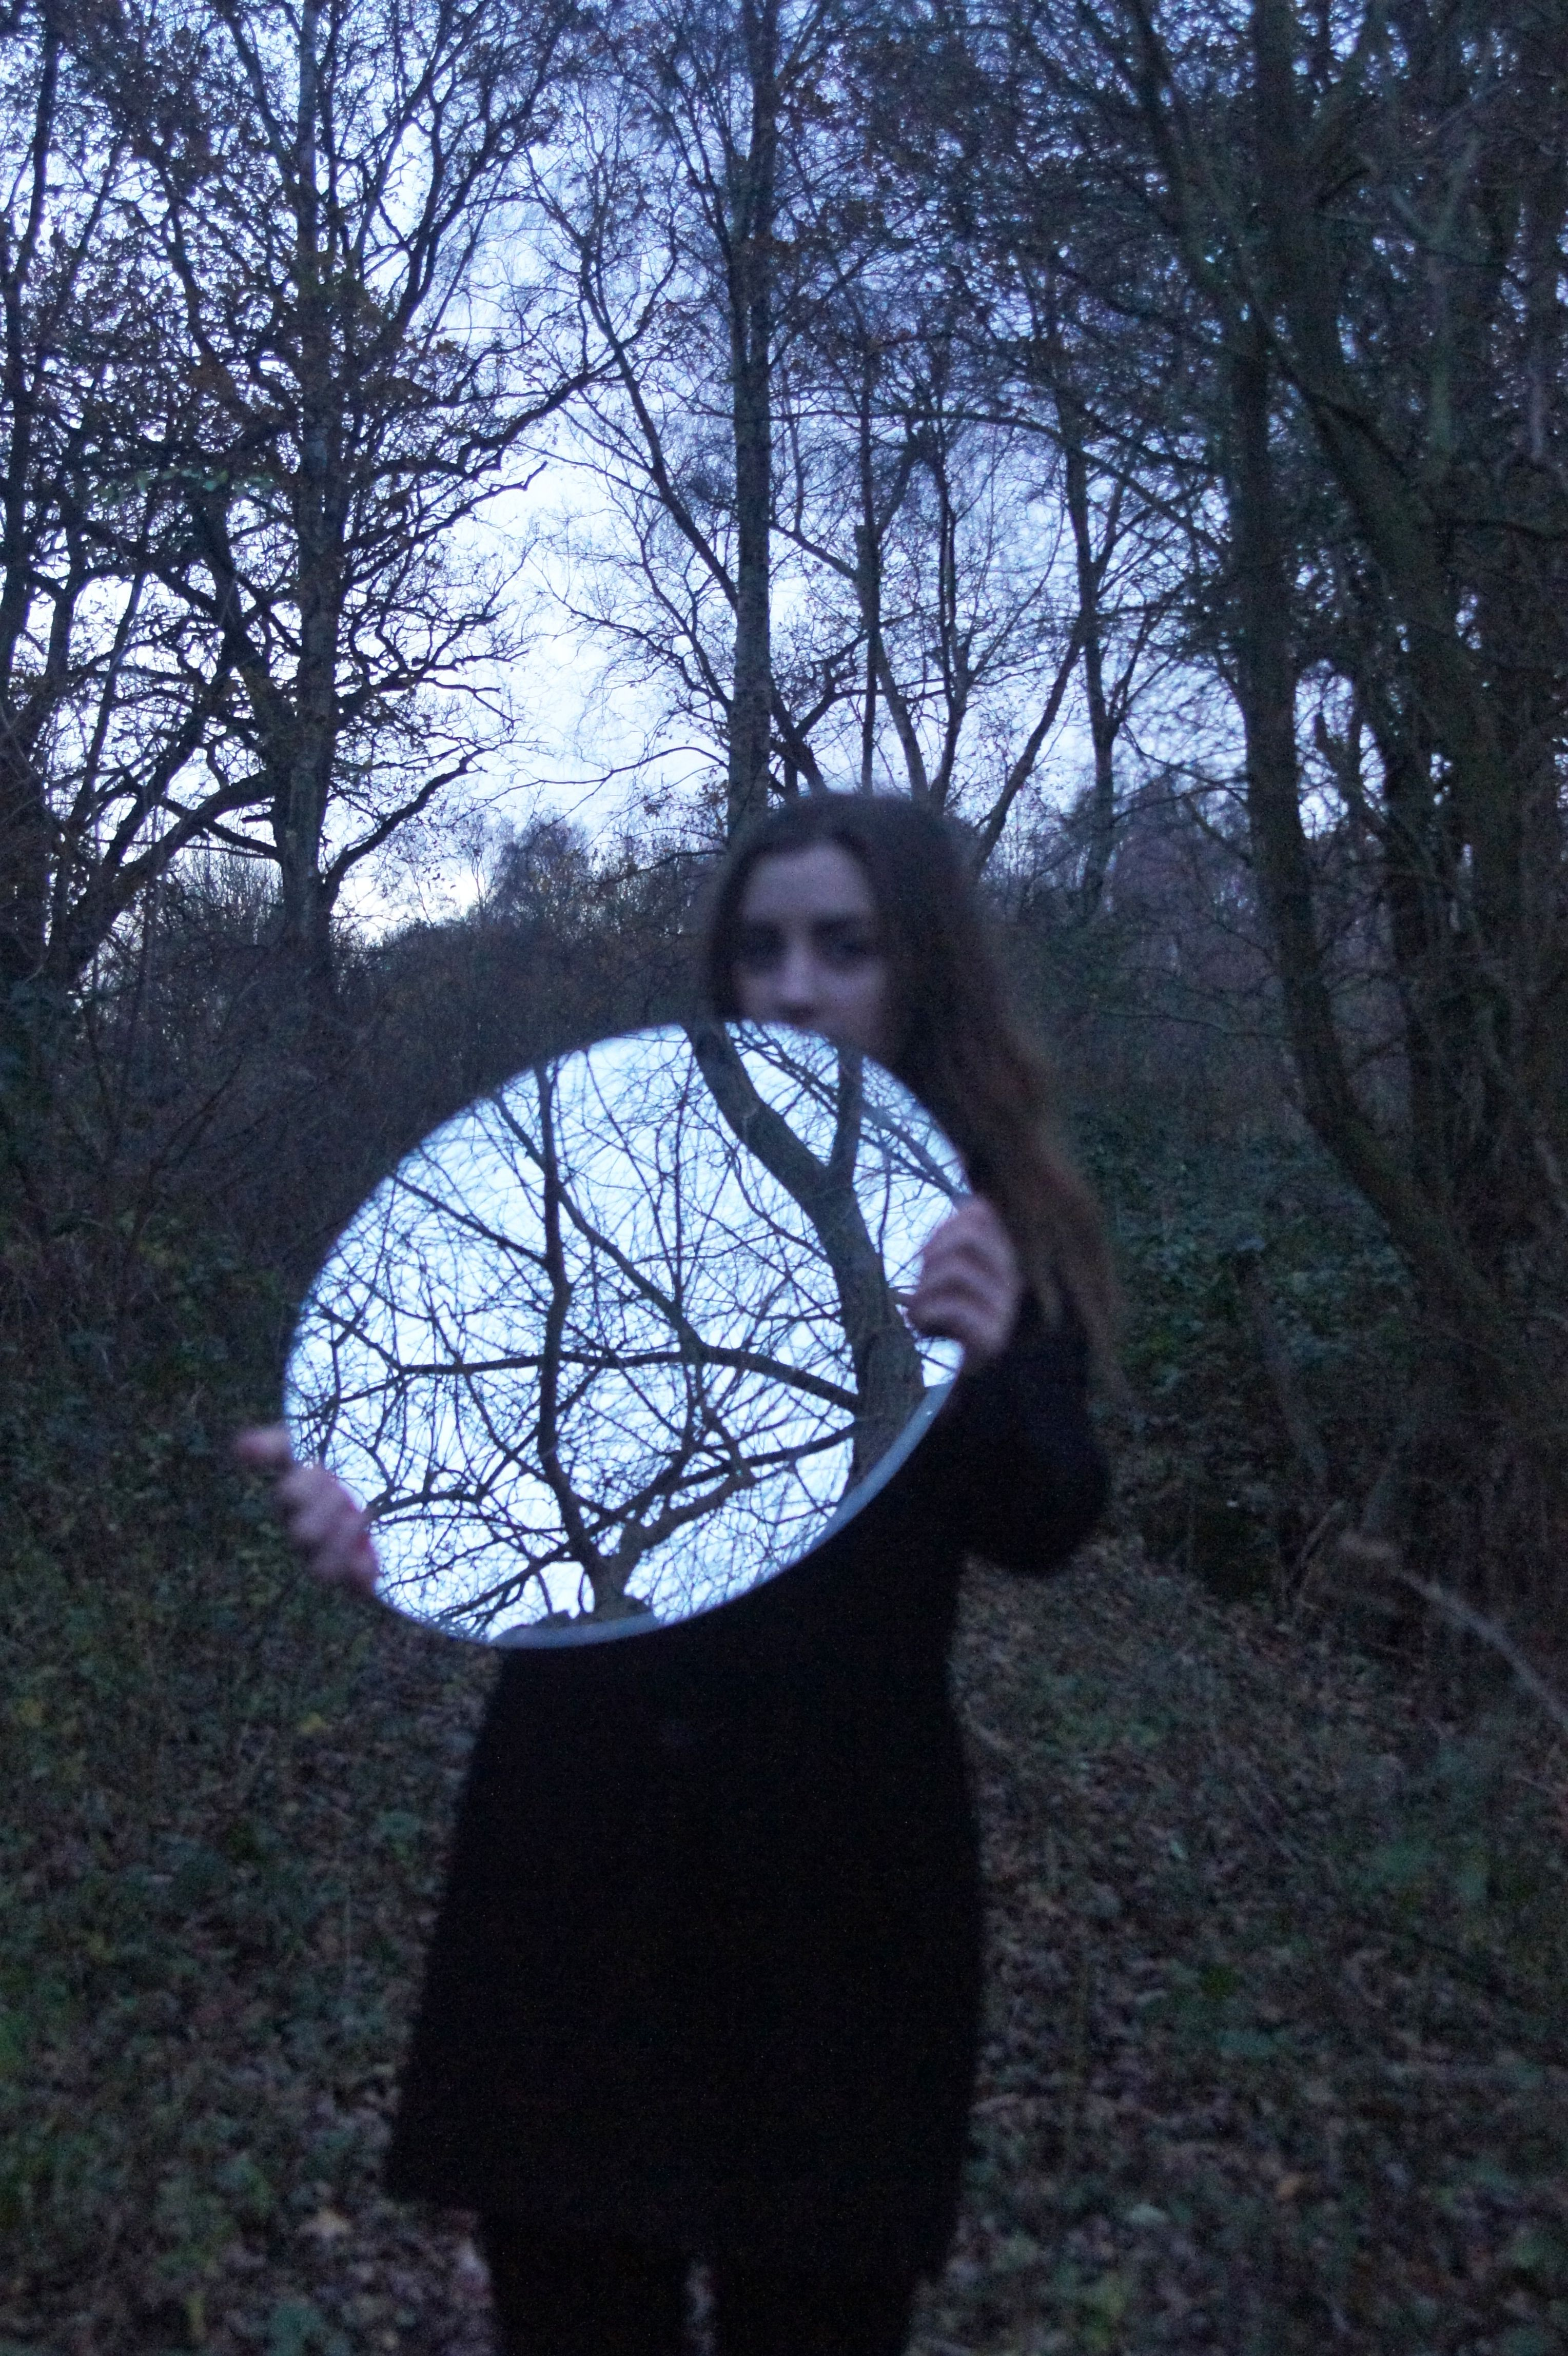 Sara Wisniewska A1F #Photography for Links and Connections project. #Portrait in the #landscape #mirror #reflection